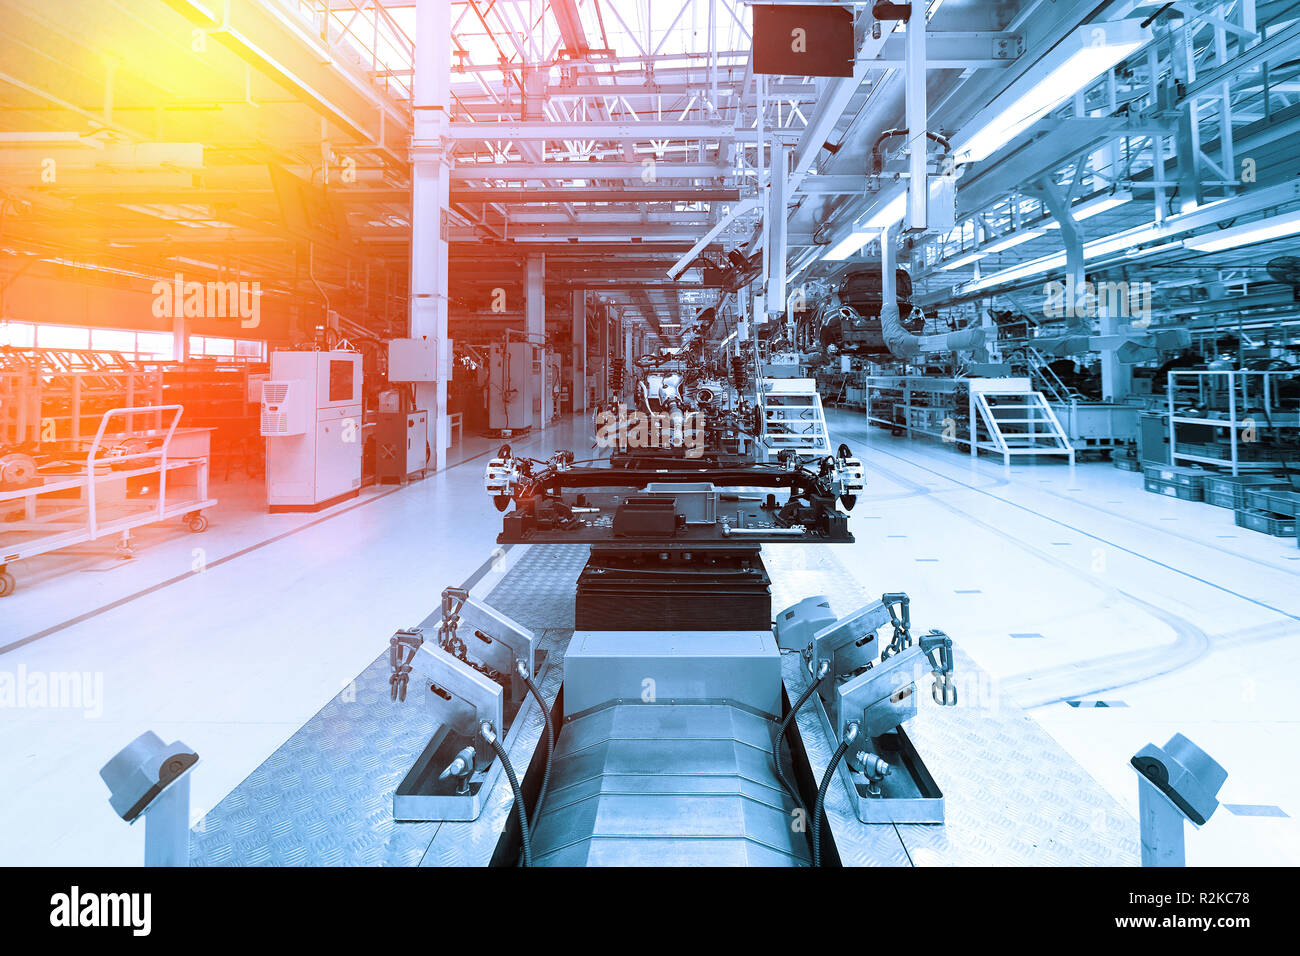 Assembling parts of the car robots. automated build process of cars. Factory for production of cars in blue.Blue tone - Stock Image